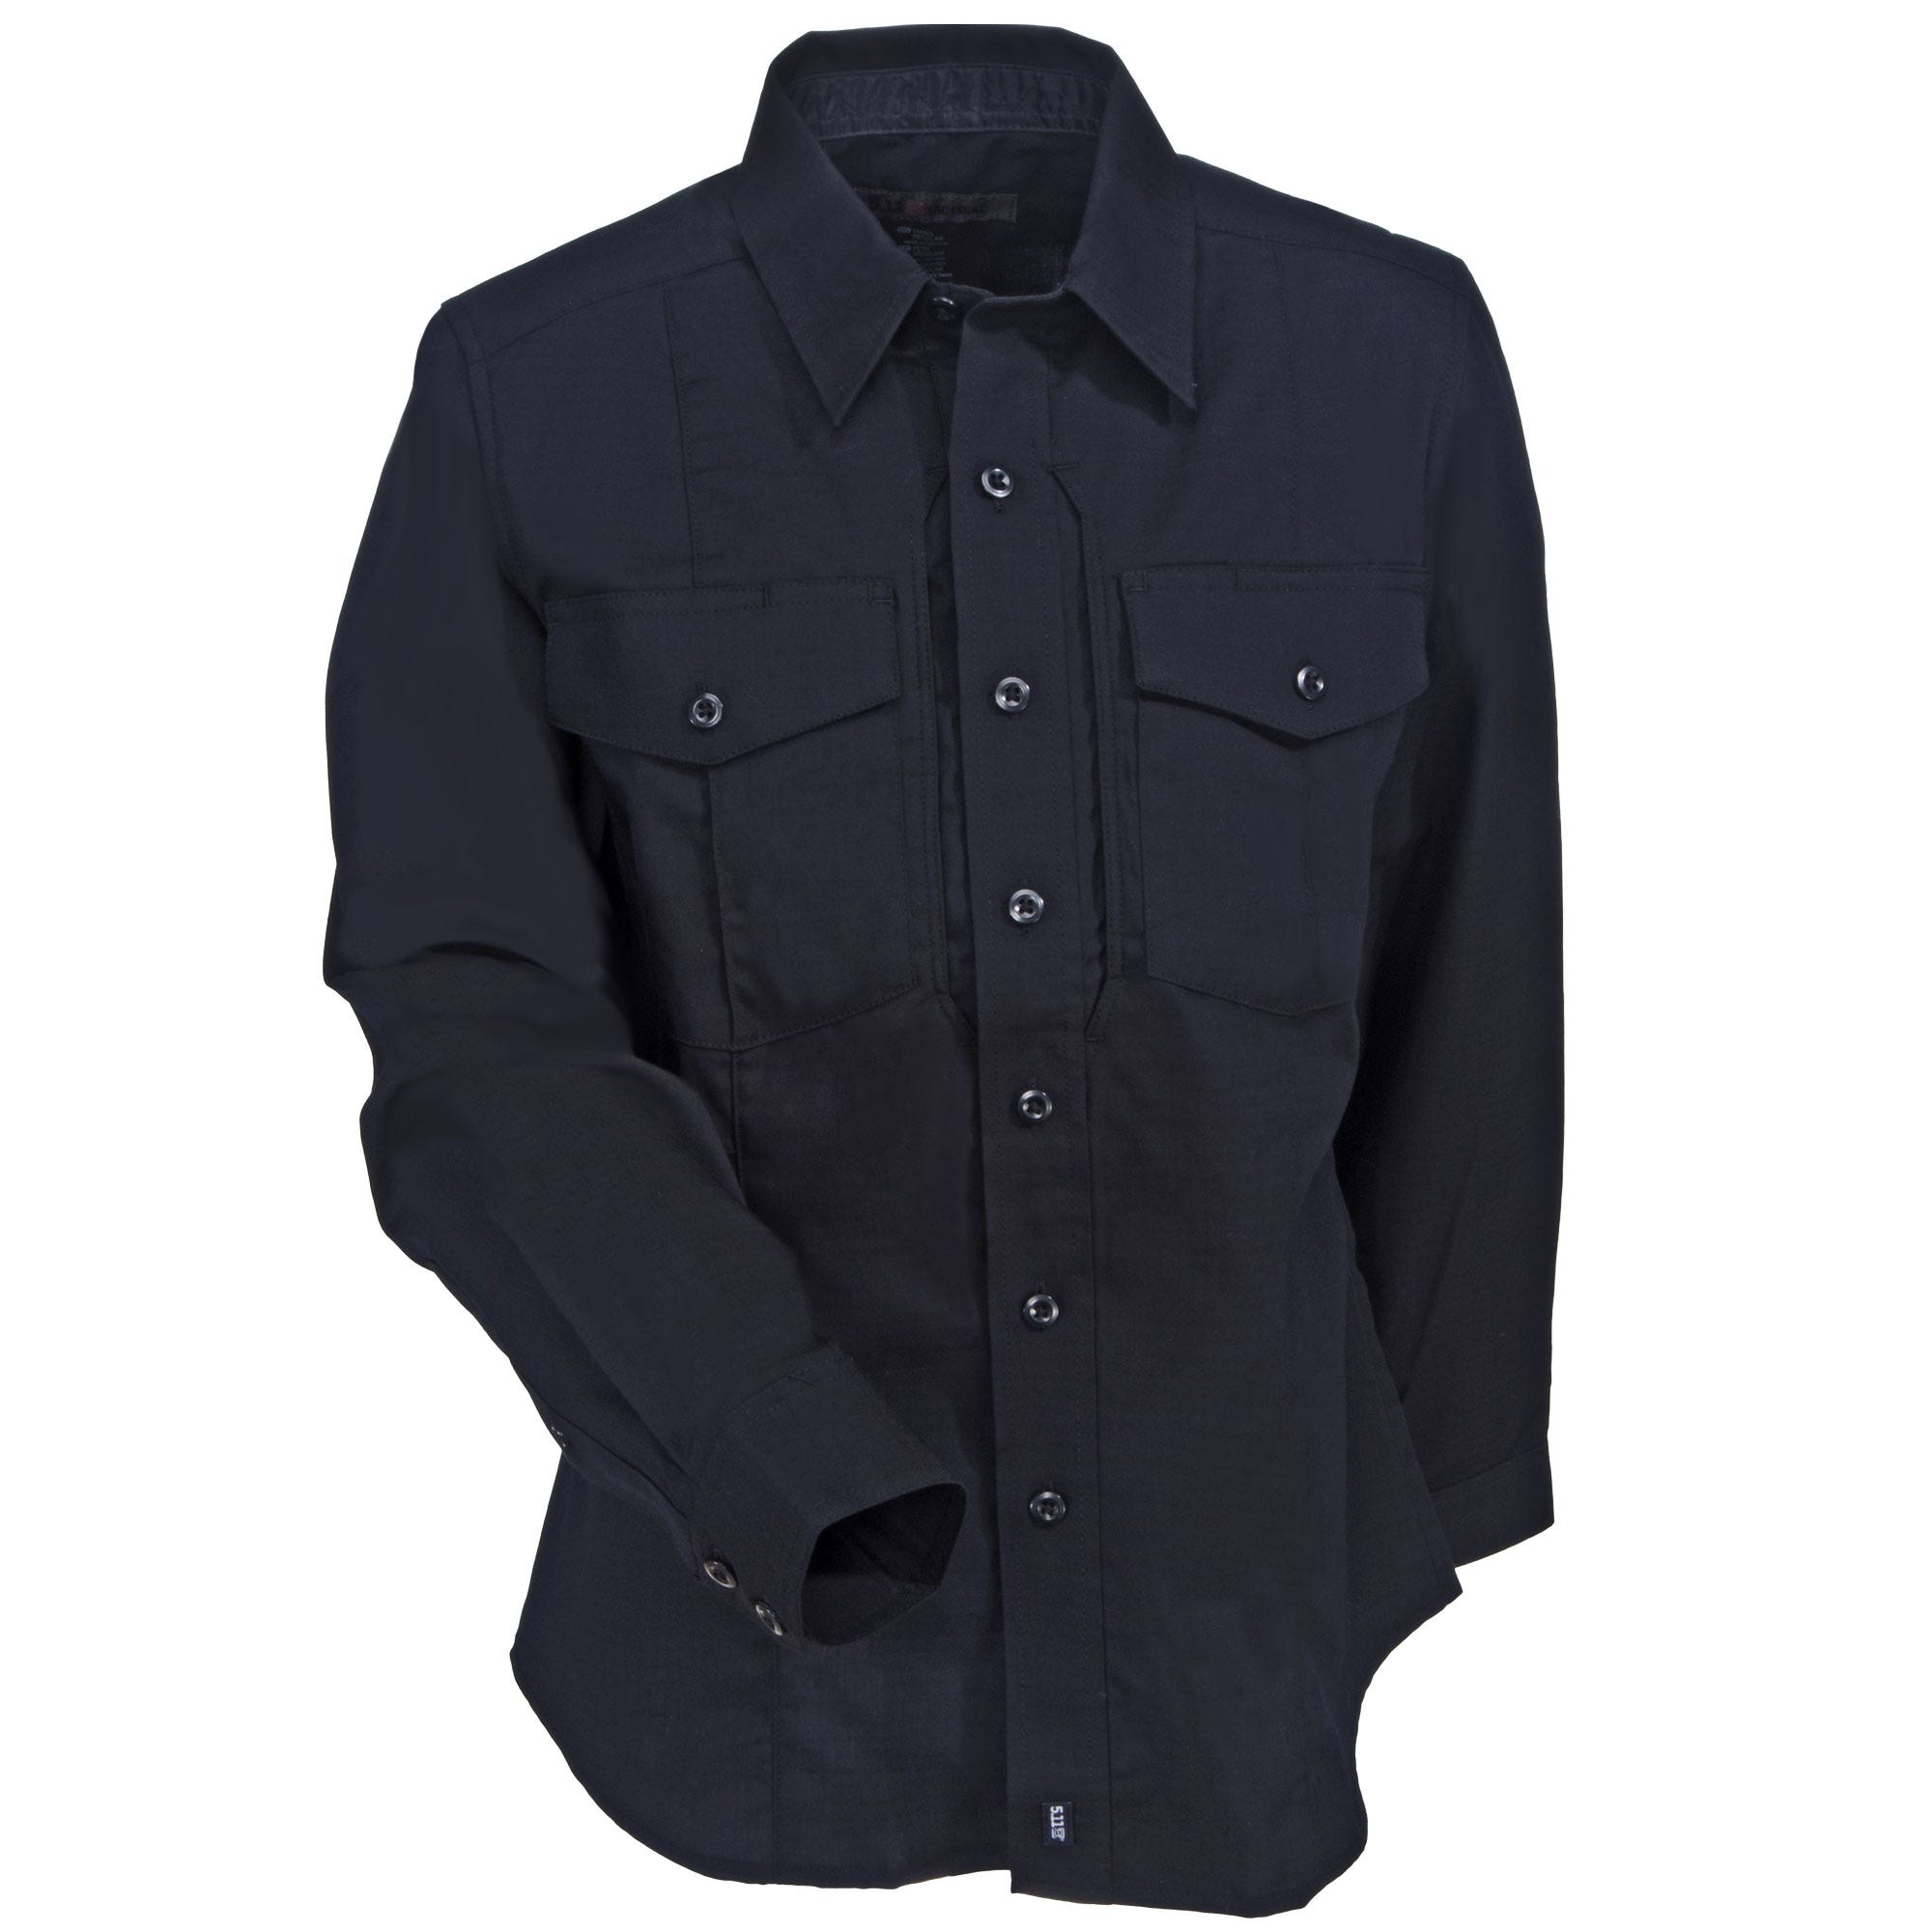 5.11 Tactical Women's 62010 750 Navy Stryke Class B Long Sleeve Shirt